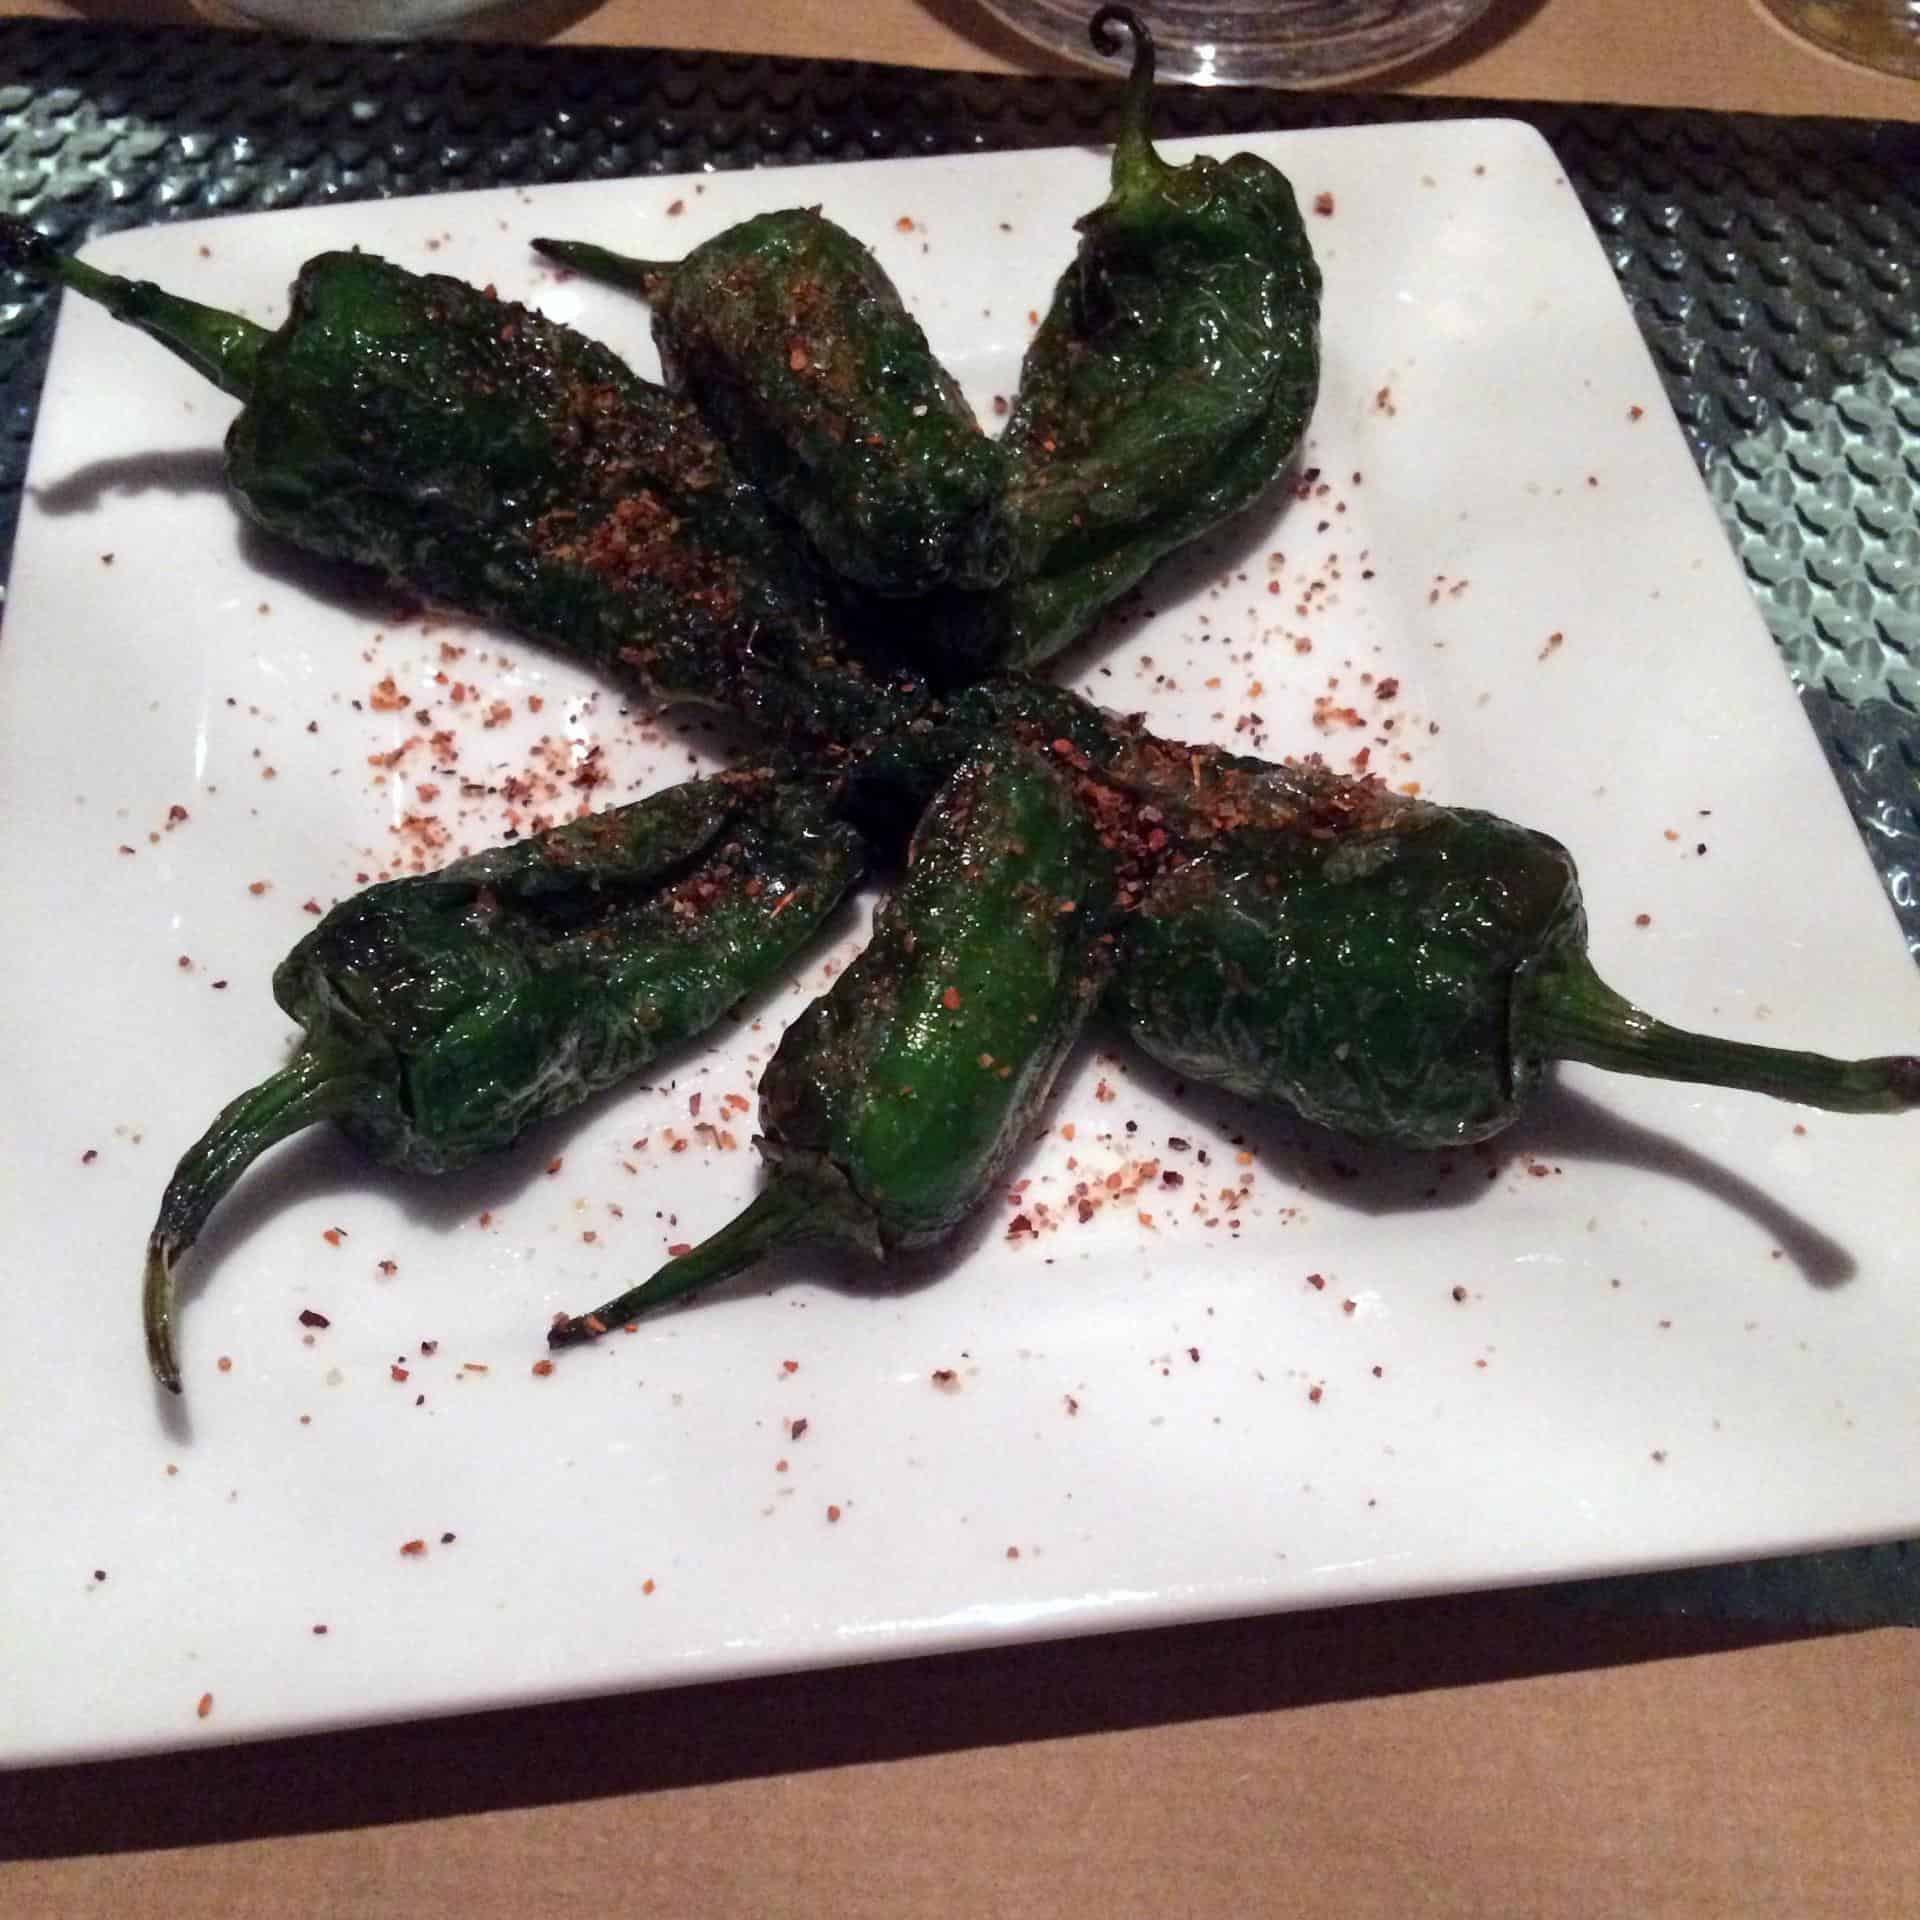 Vegan tapas in Barcelona - Padron peppers